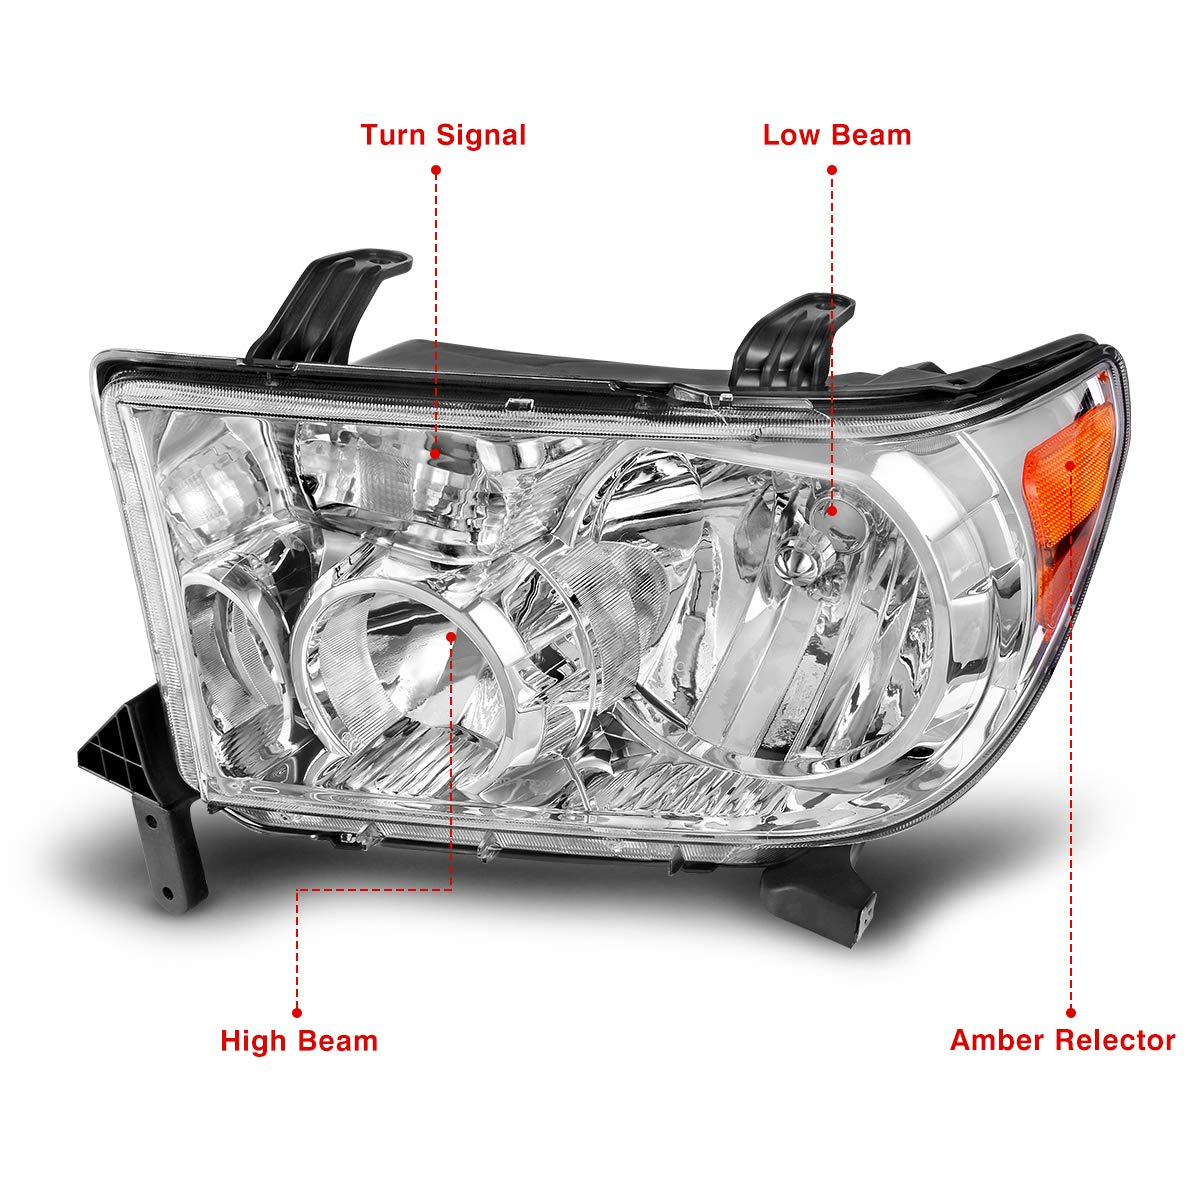 Headlight Assembly for 2007-2011 Toyota Tundra 2008-2016 Toyota Sequoia OE Style Replacement Headlamps Chrome Housing Amber Reflector Passenger /& Driver Side